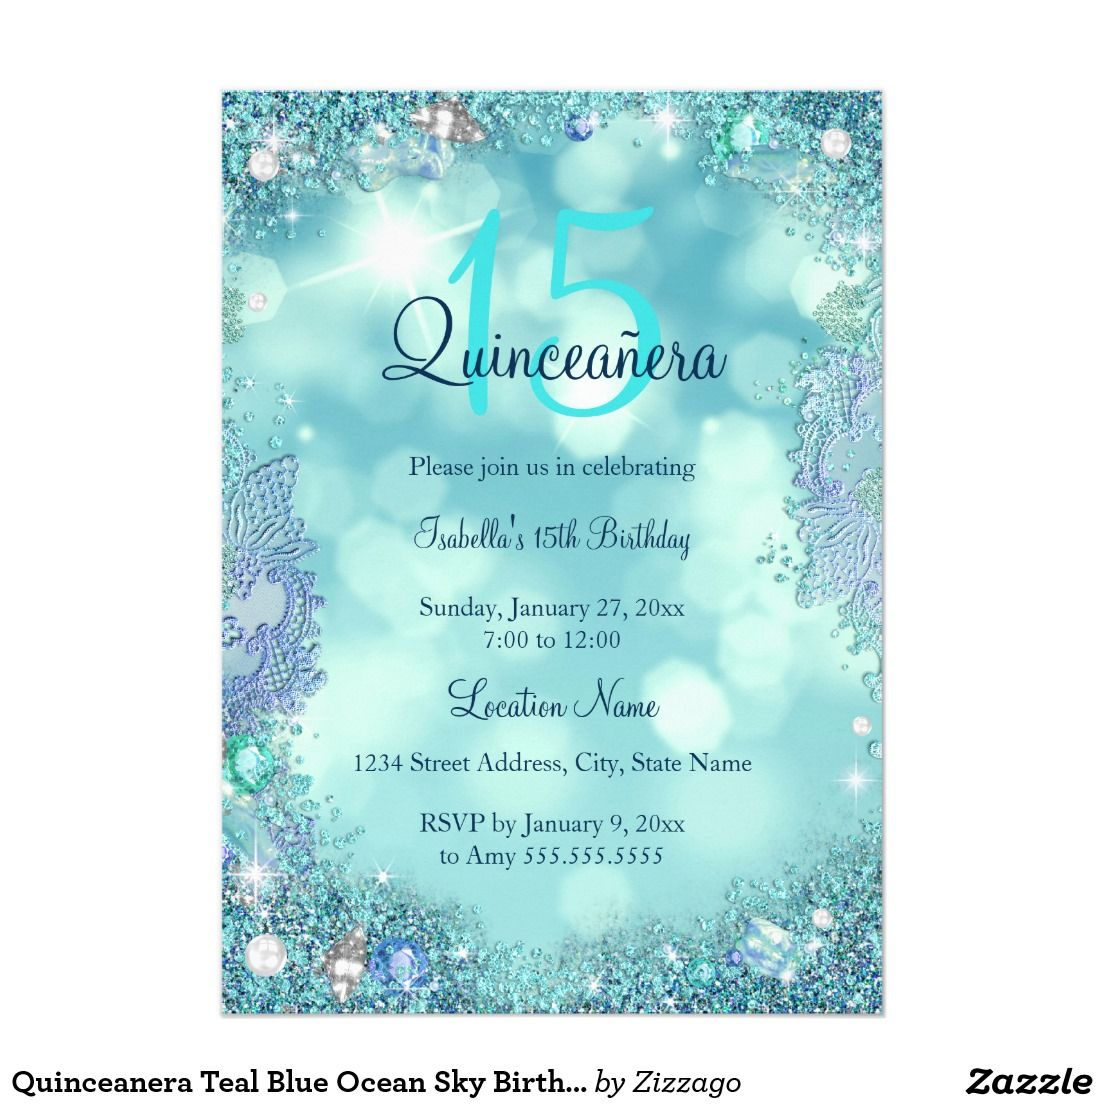 quinceanera teal blue ocean sky birthday party invitation in 2018